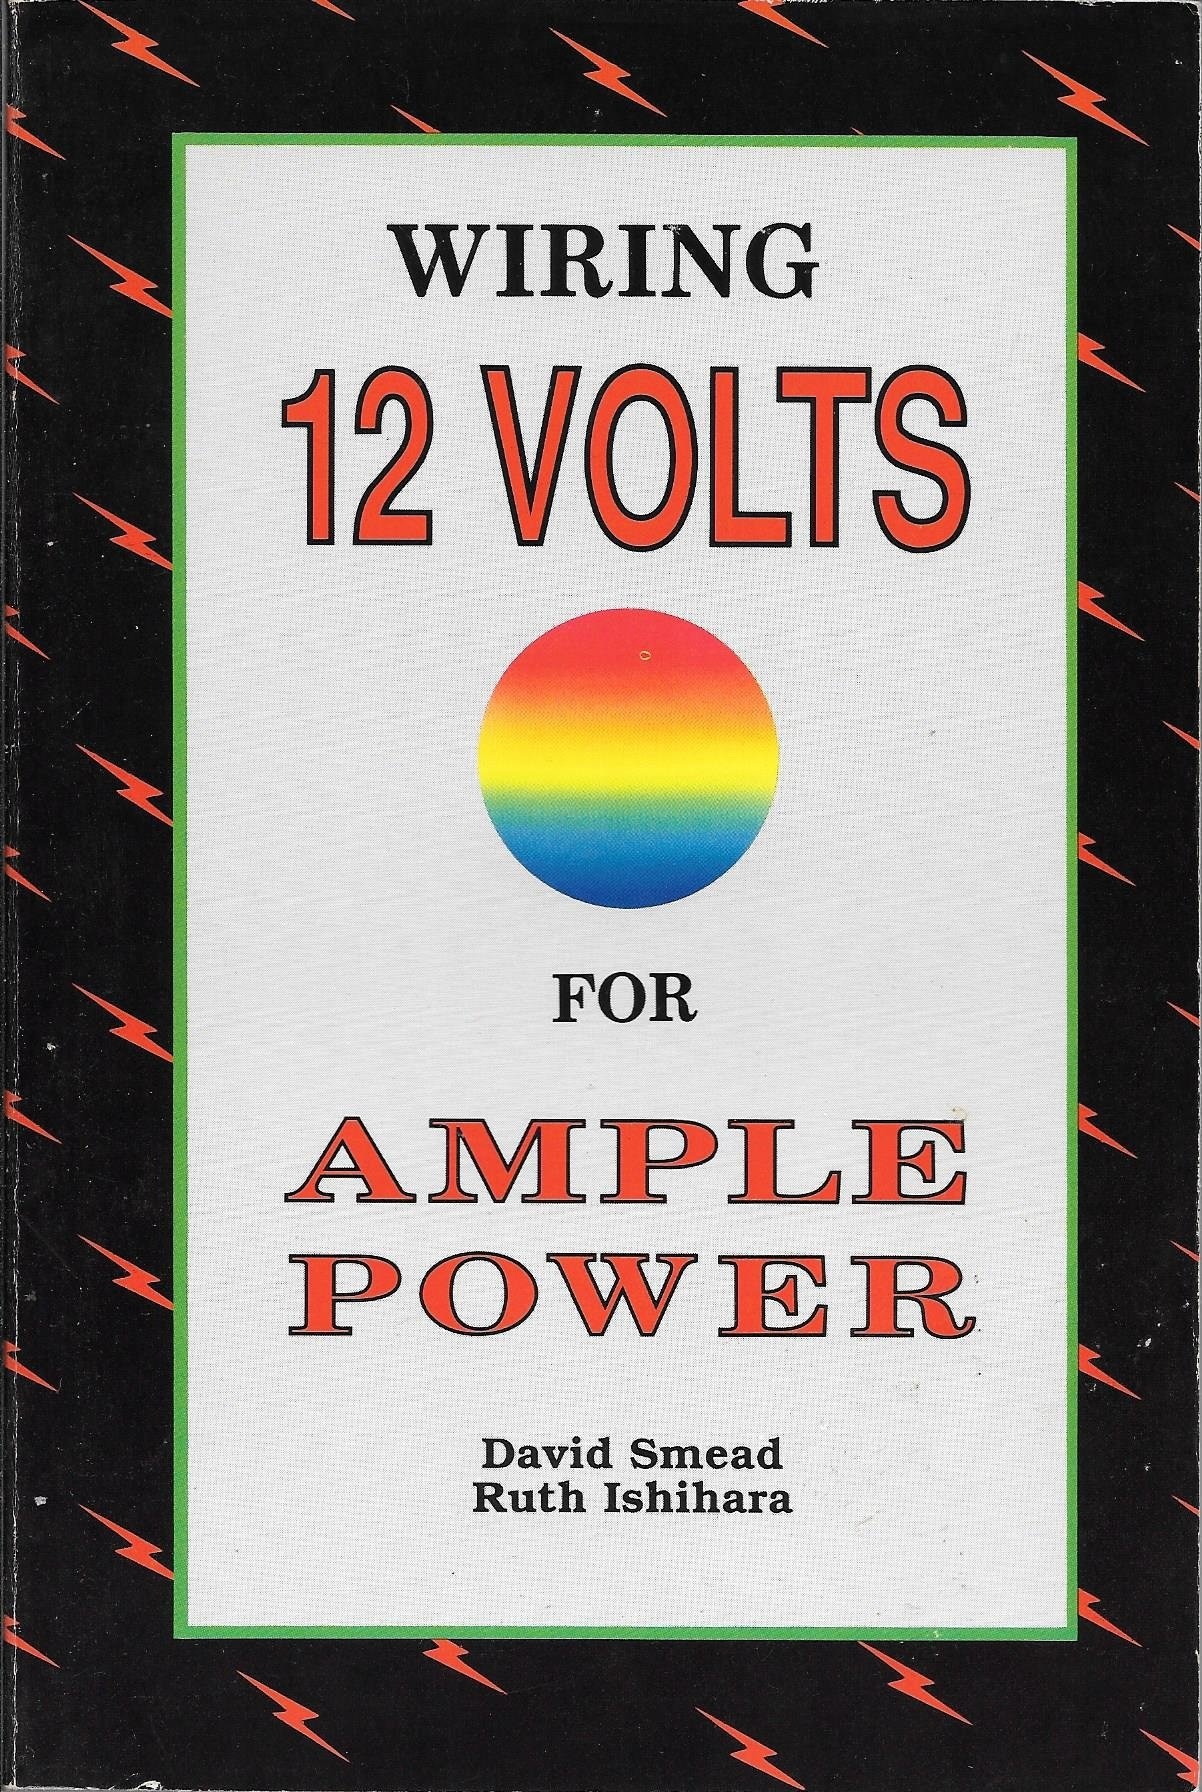 fishing boat 12 volt wiring diagram best wiring librarywiring 12 volts for  ample power david smead